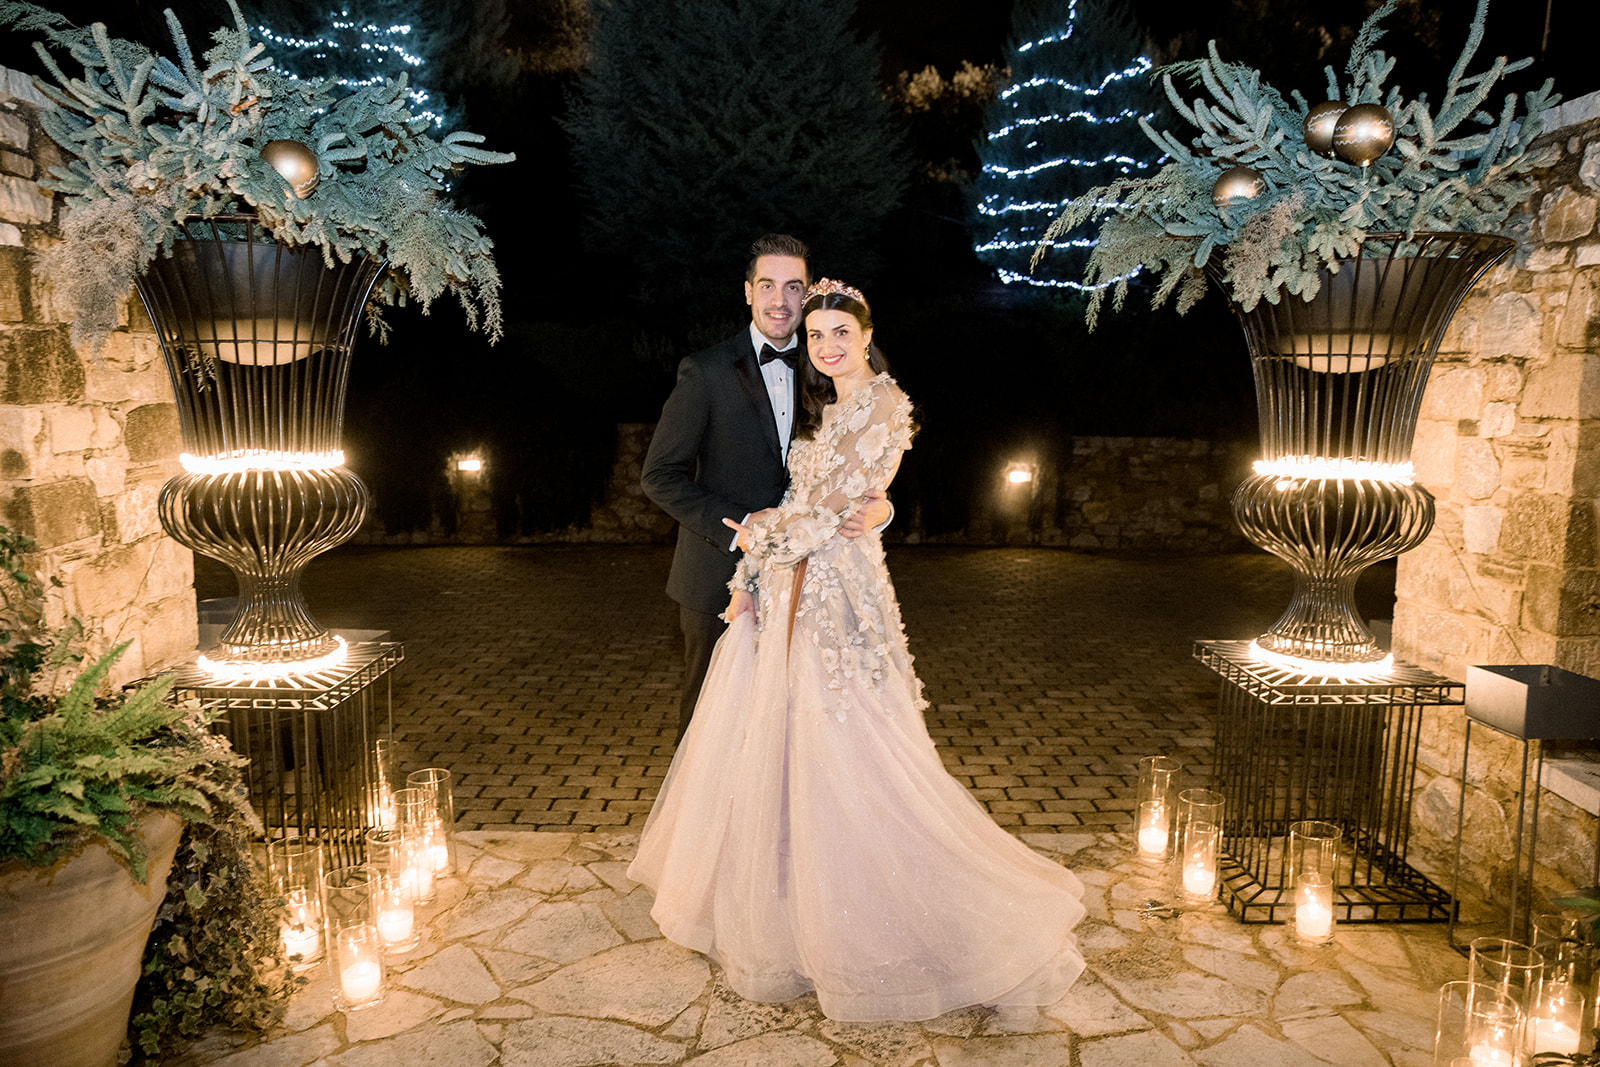 The wonderful weddinng of Nikos and Evangelia gallery image 1